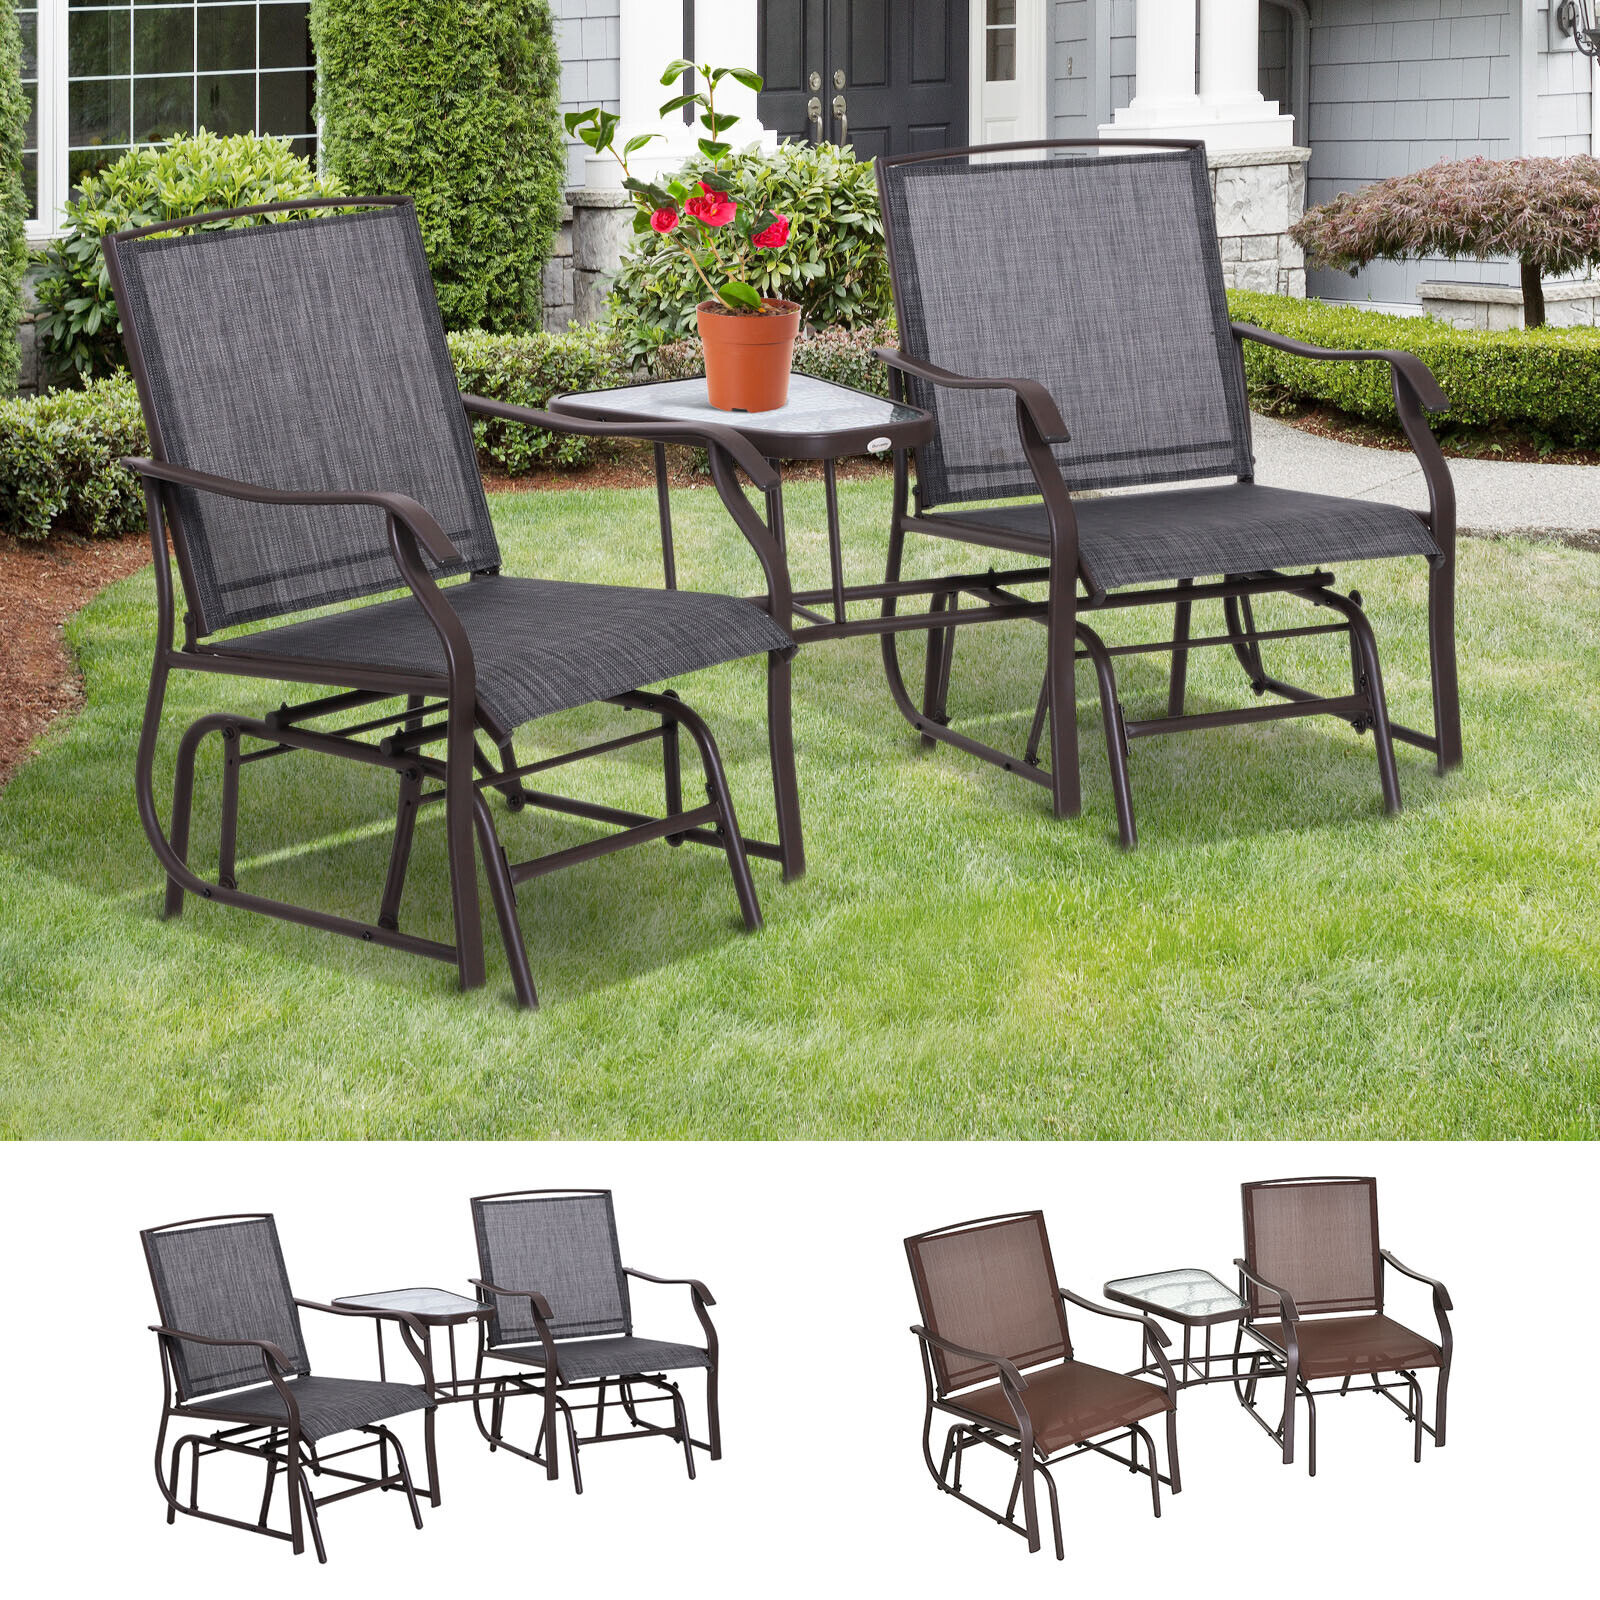 Patio Double Glider Chairs Garden Bench with Center Table Backyard Furniture